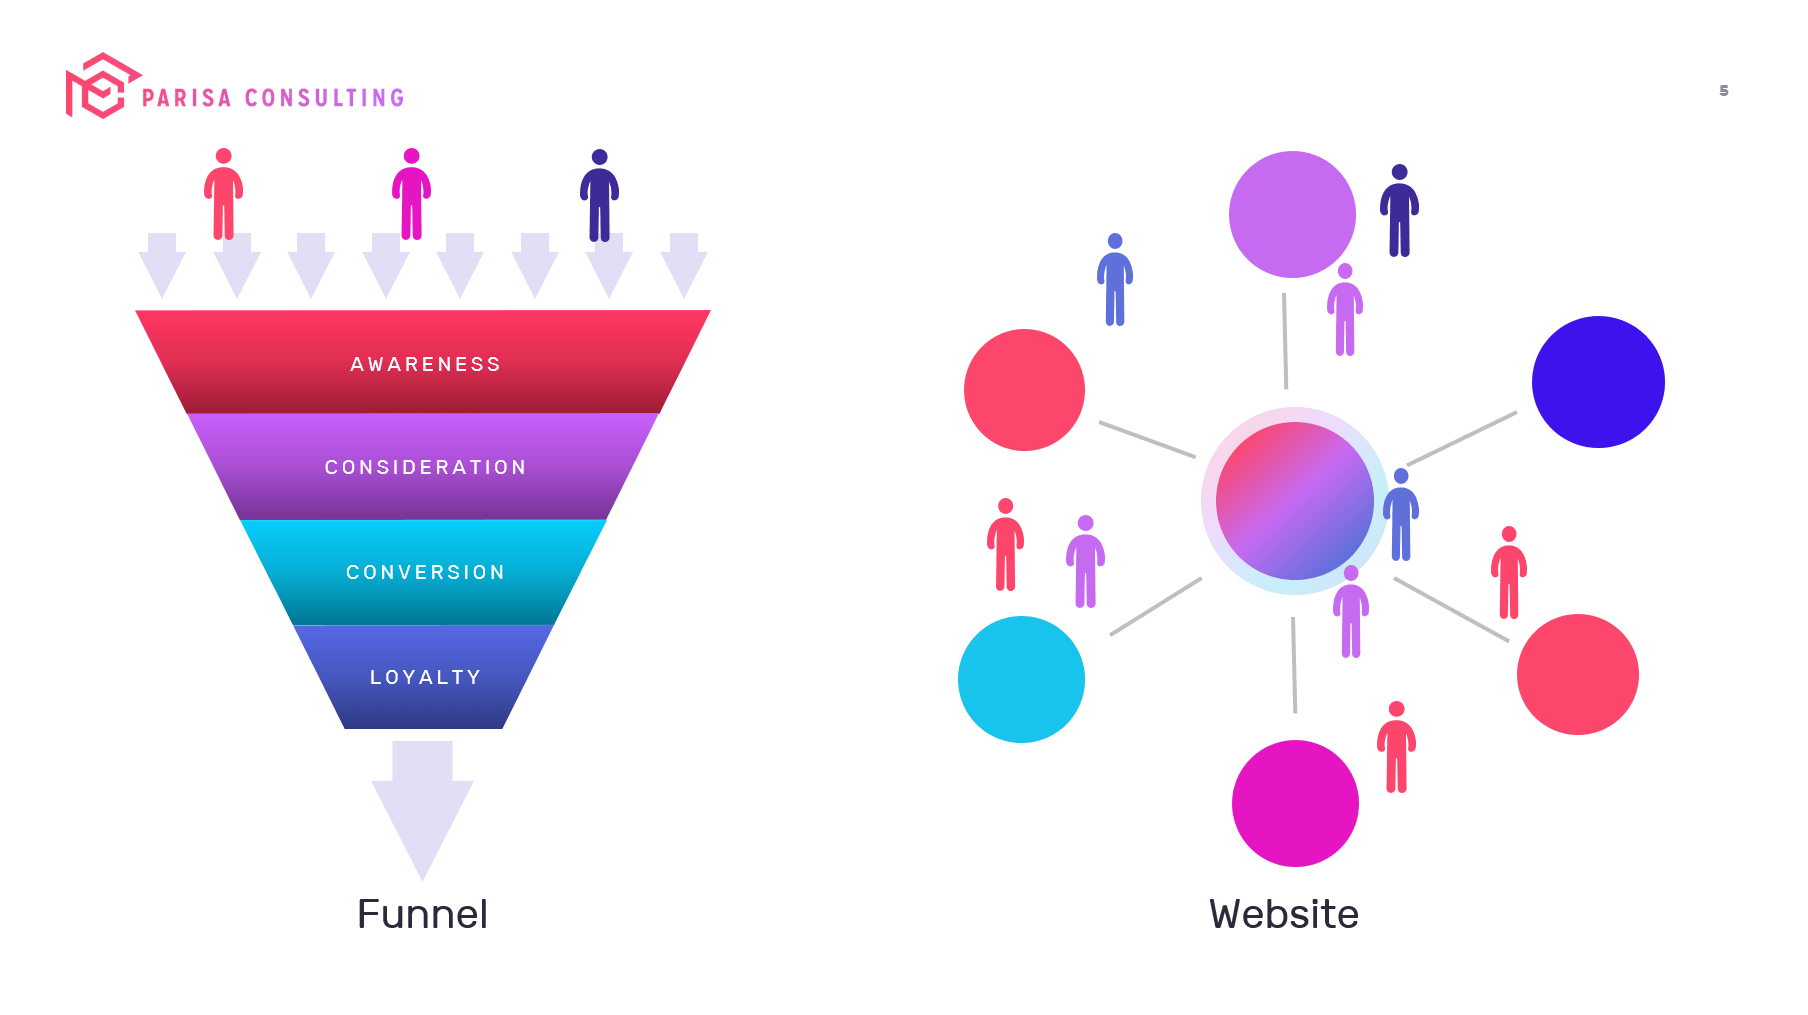 website vs funnel wordpress marketing